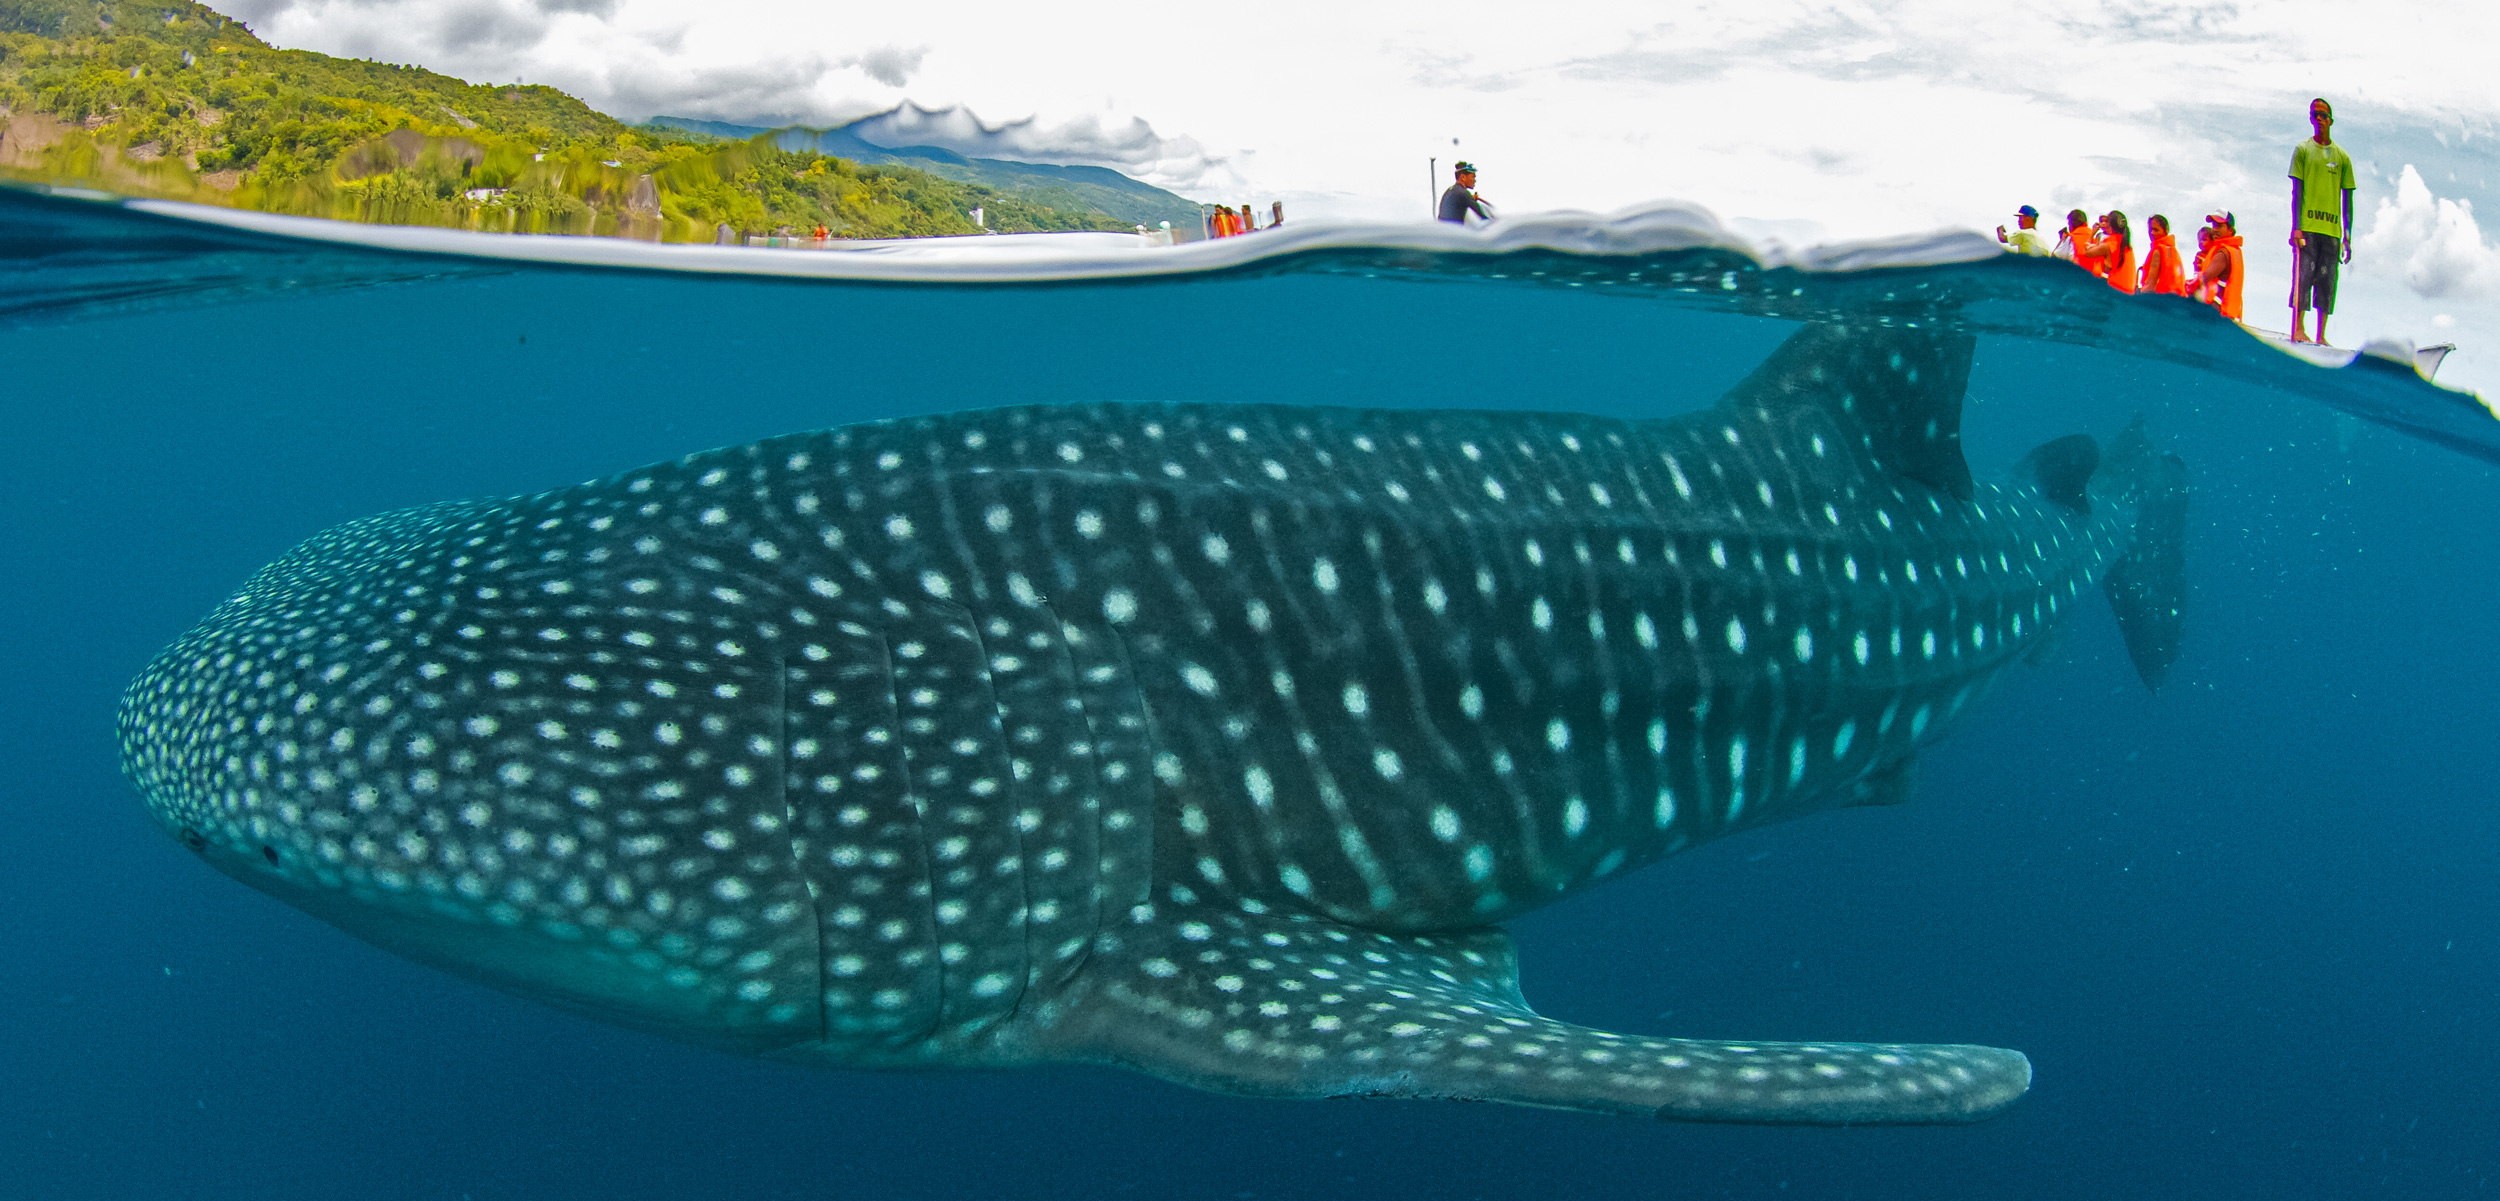 tourists get close to a whale shark in the Philippines